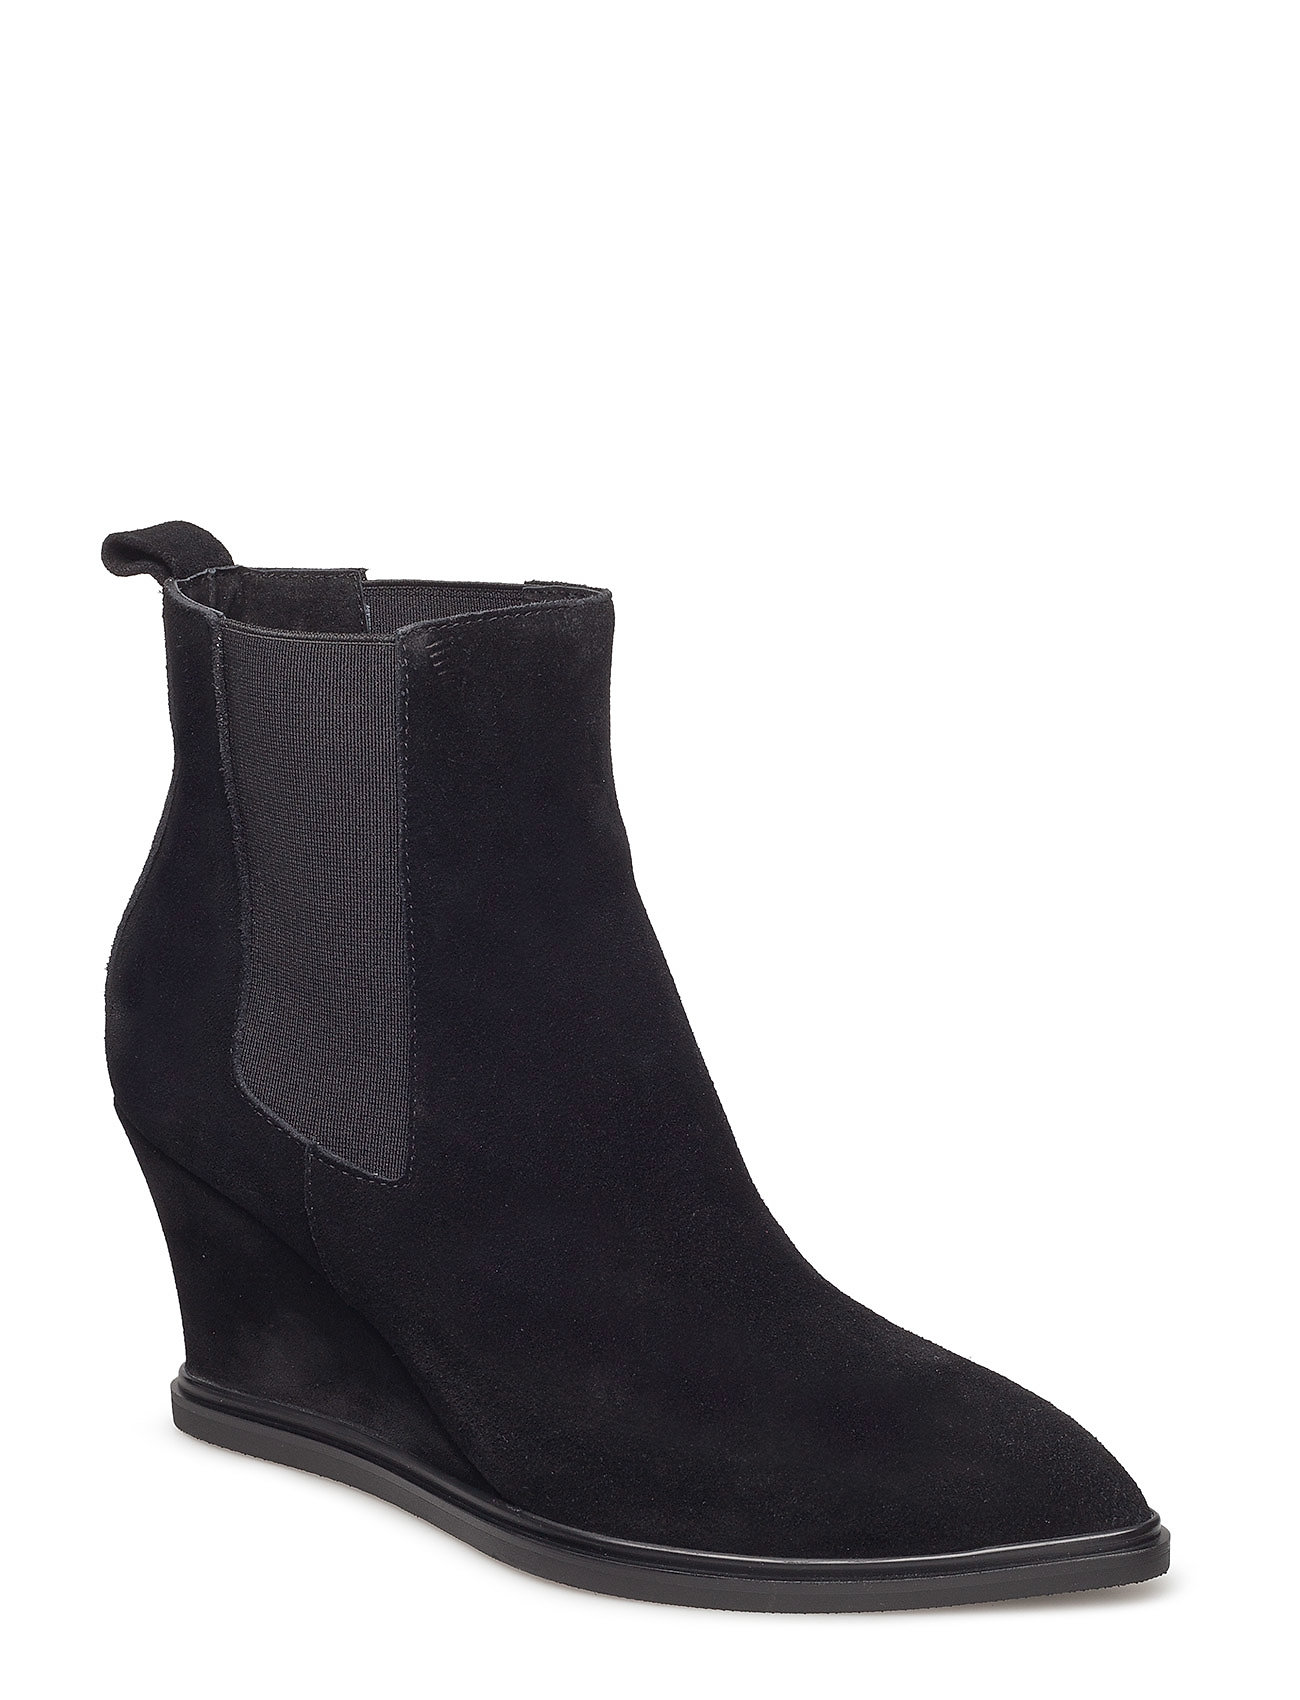 Image of Alea Chelsea S Shoes Boots Ankle Boots Ankle Boot - Heel Sort Shoe The Bear (3052621349)